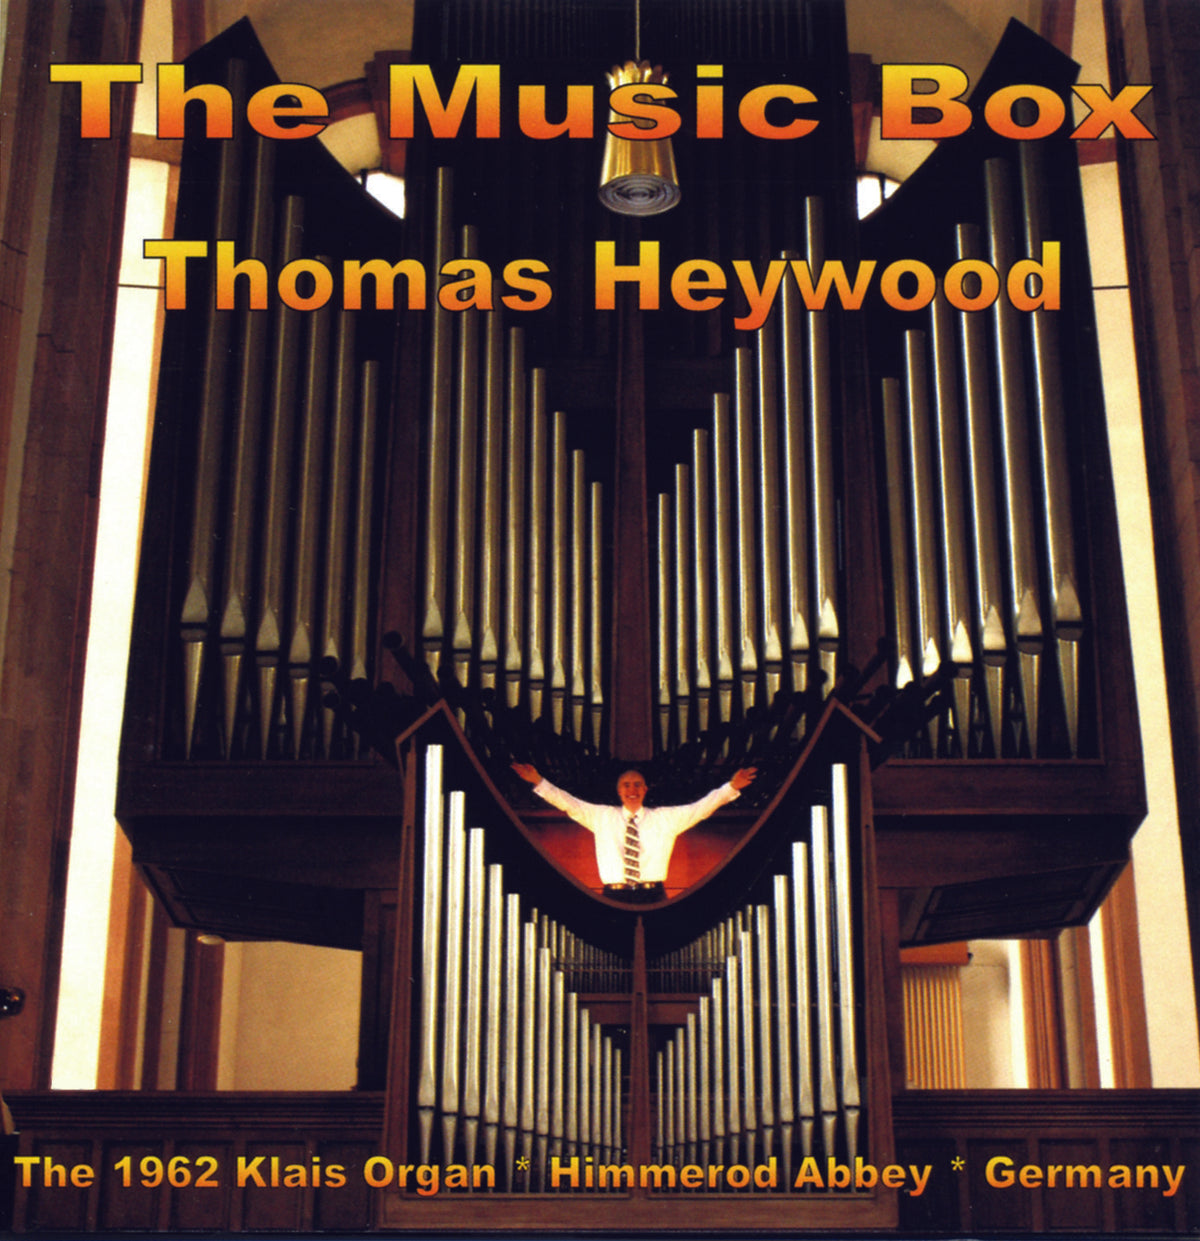 The Music Box (CD) - Concert Organ International